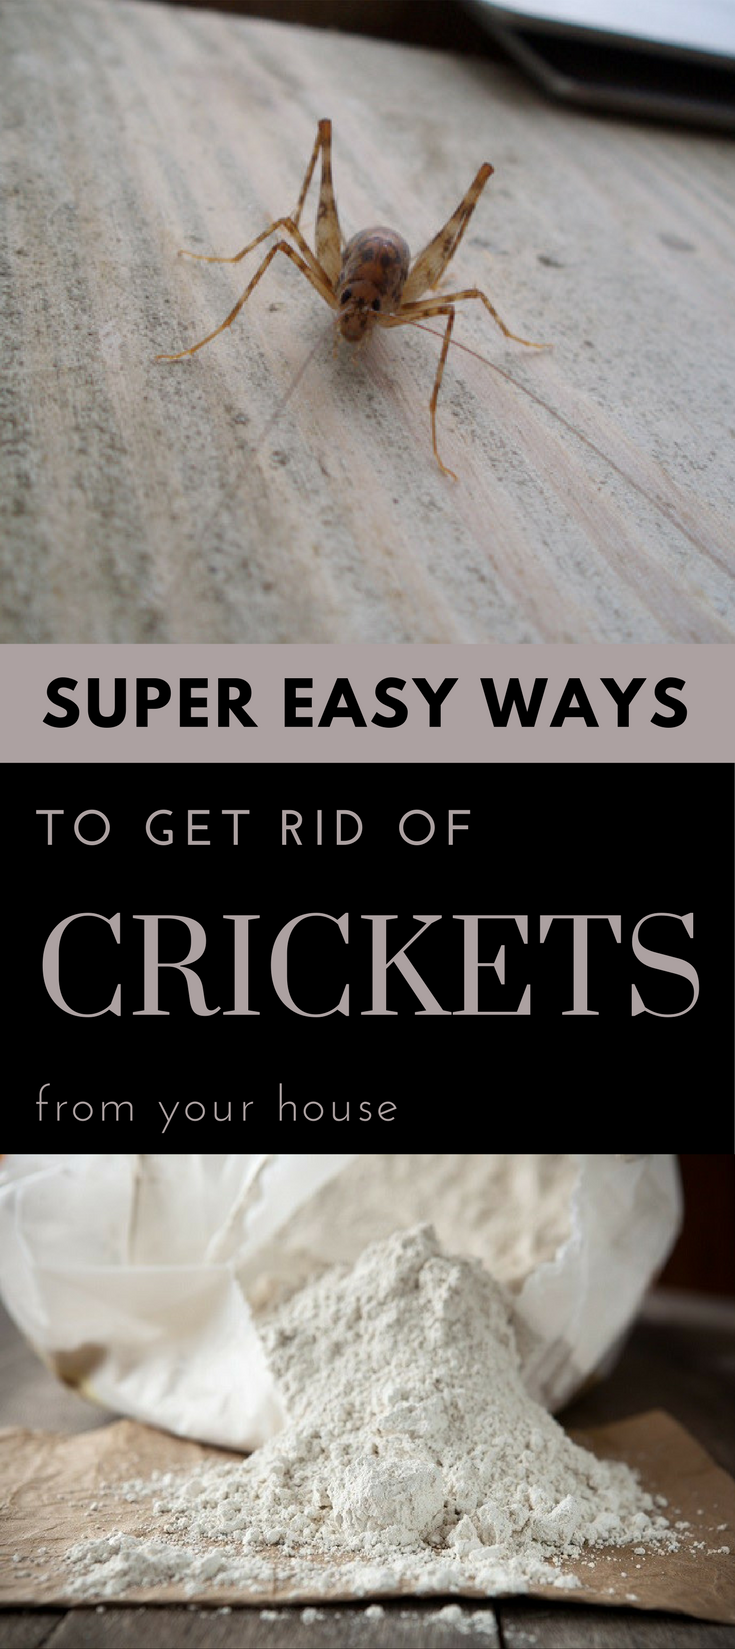 How To Get Rid Of Crickets In The House Nz